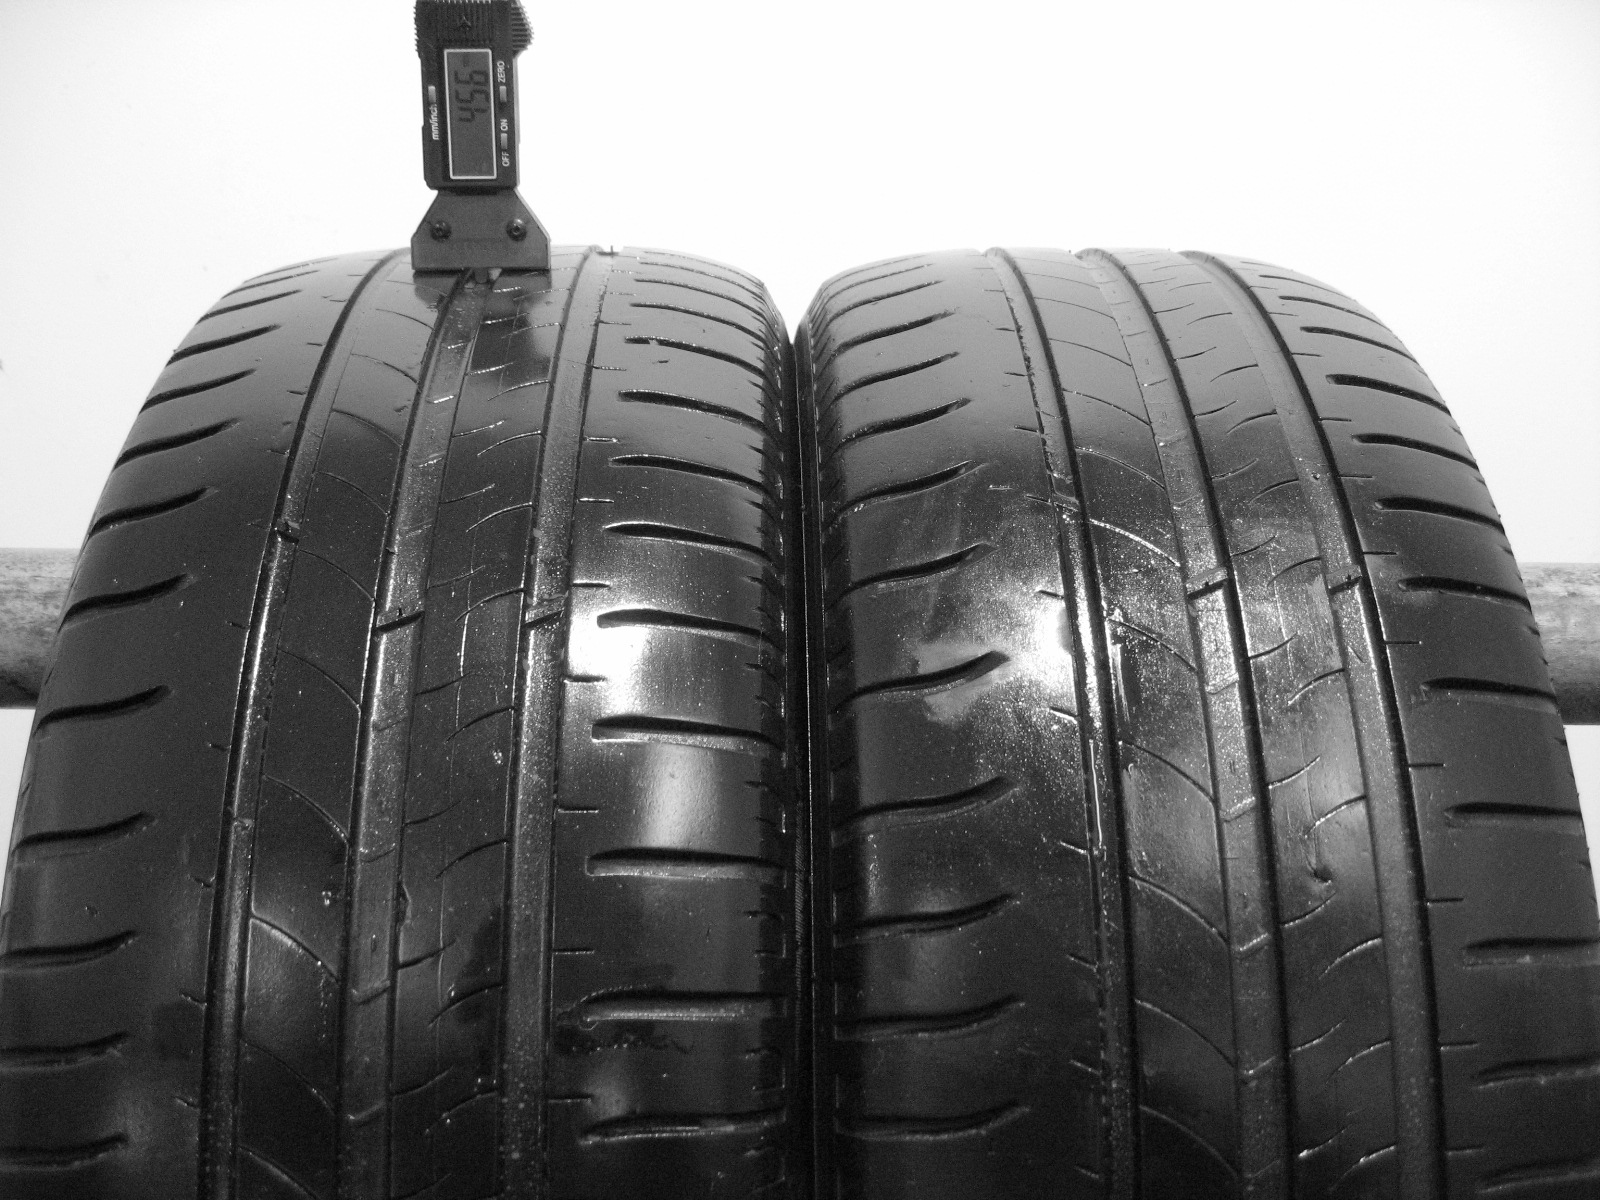 Použité-Pneu-Bazar - 205/55 R16 94V MICHELIN ENERGY SAVER 3mm